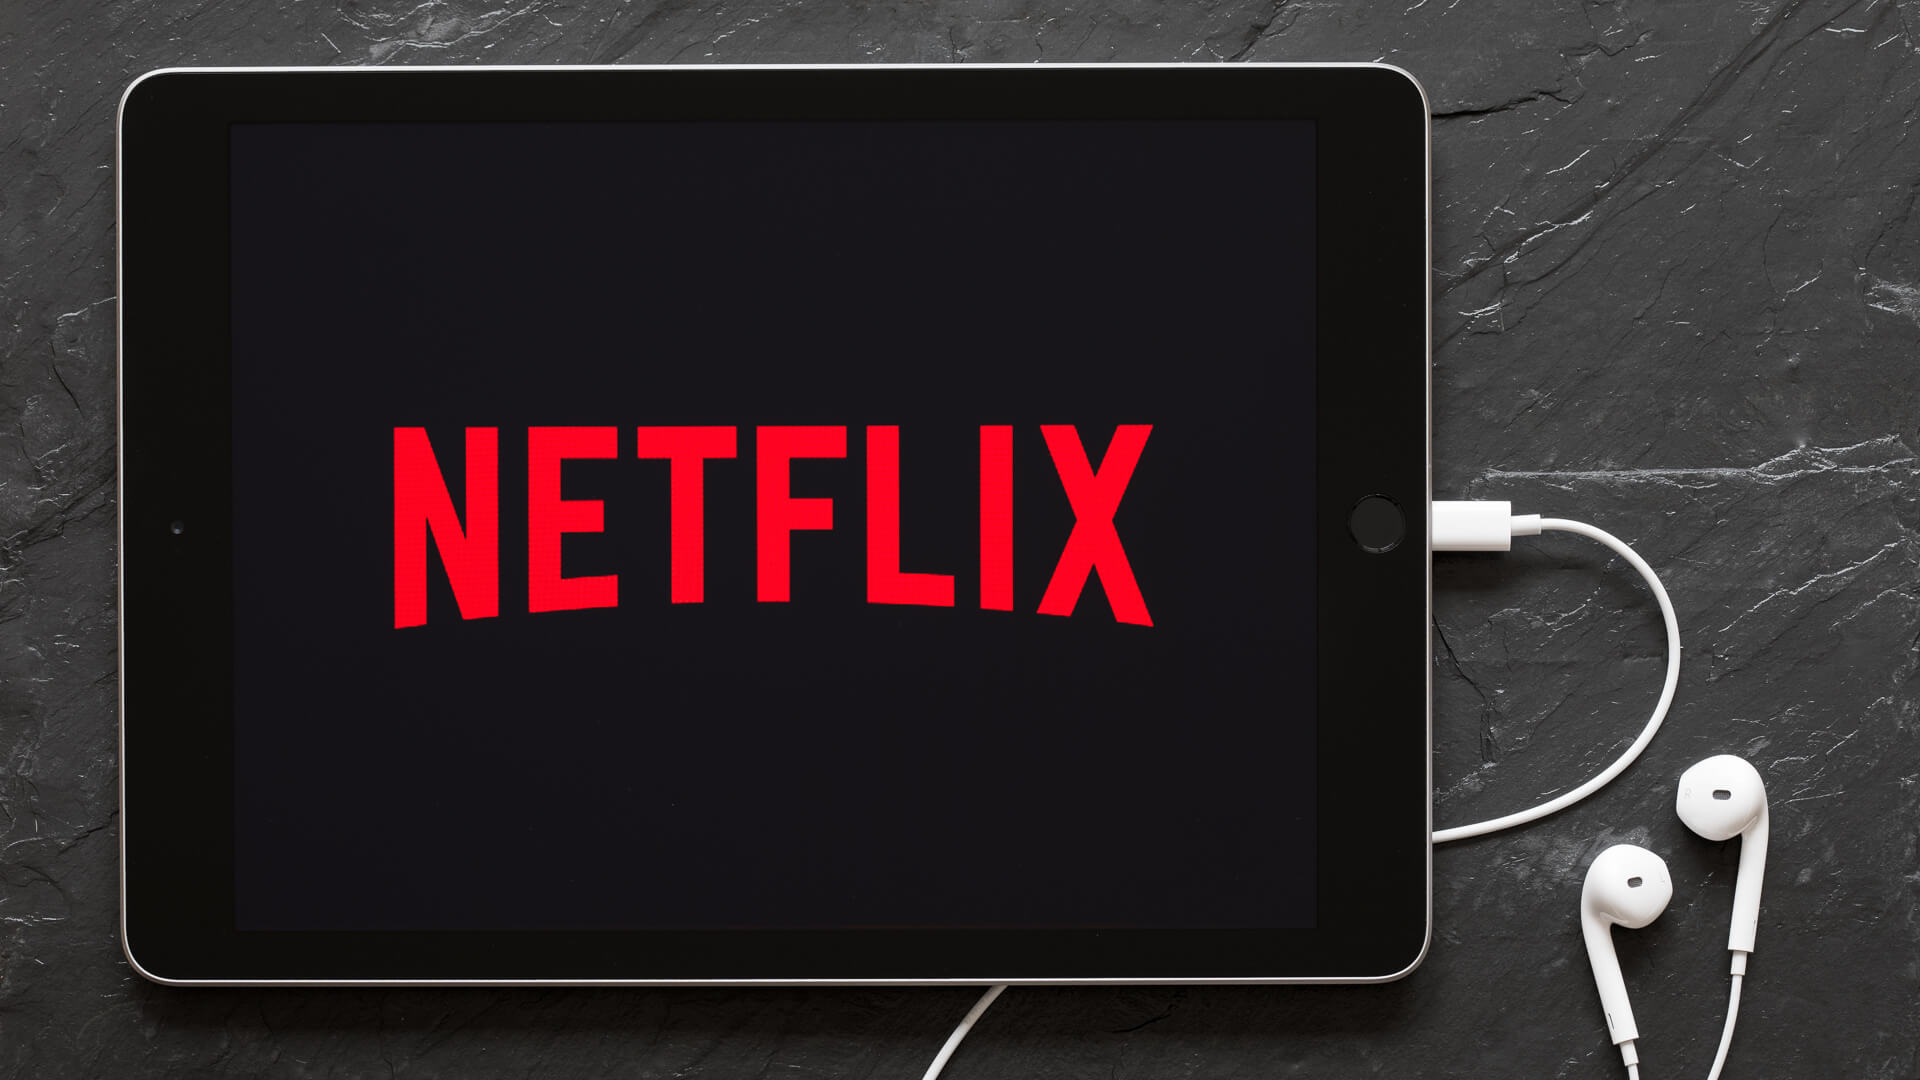 What Are Three Methods To Remove Netflix Content From